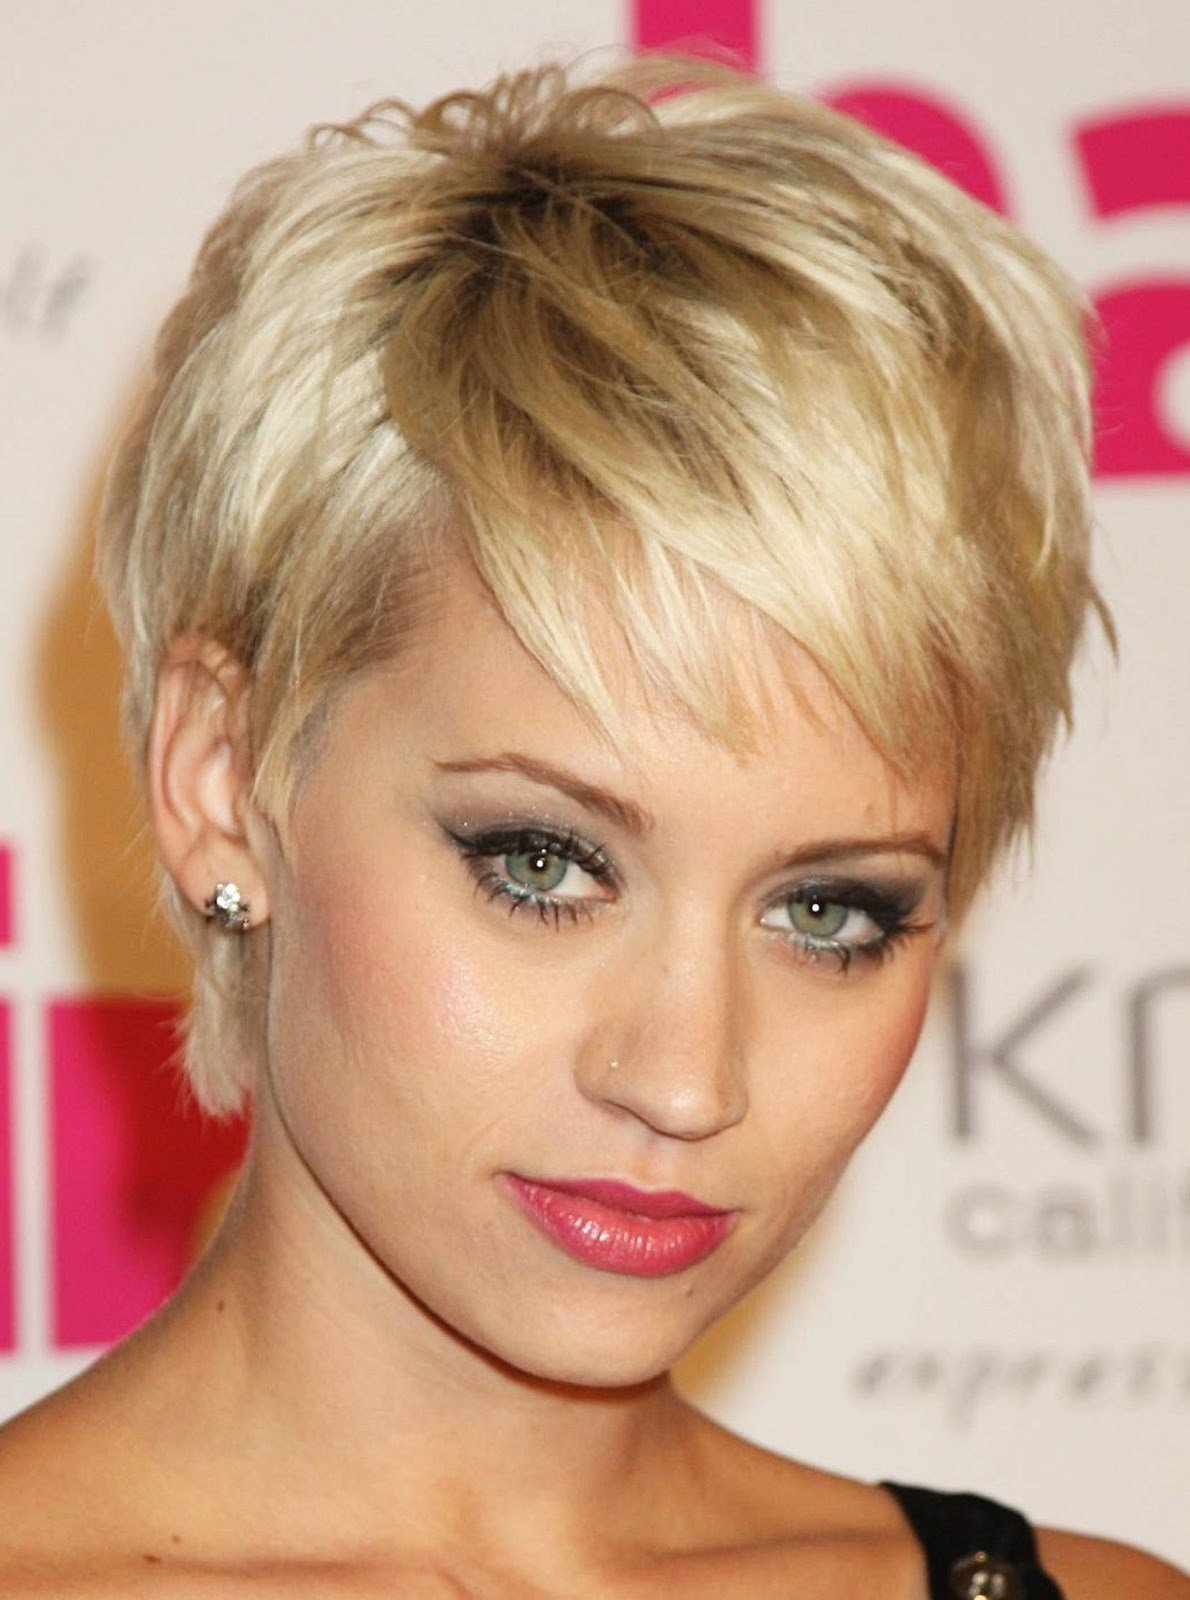 New 30 Best Short Hairstyle For Women – The Wow Style Ideas With Pictures